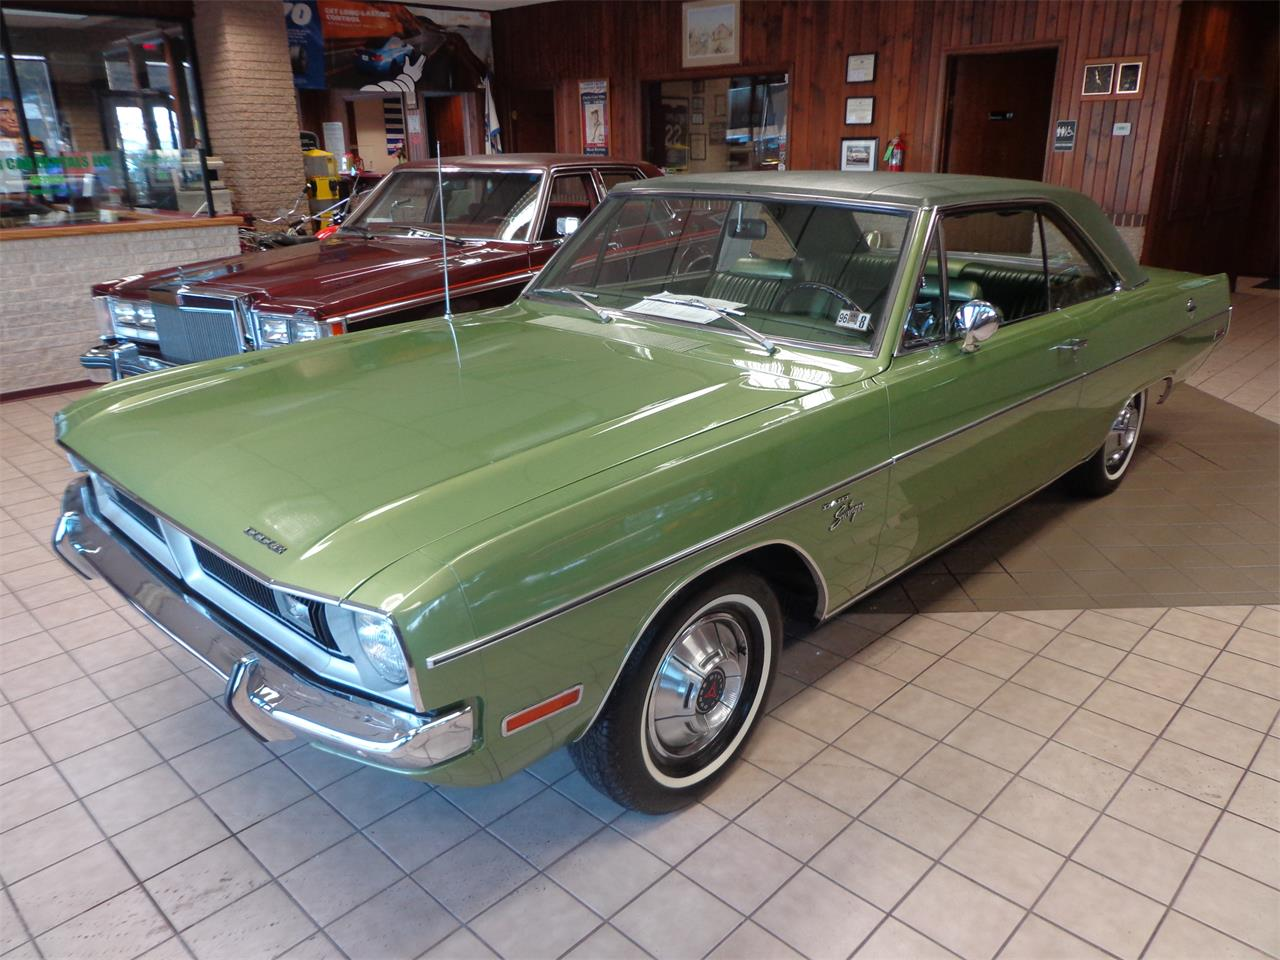 1971 Dodge Dart Swinger for sale in Mill Hall, PA